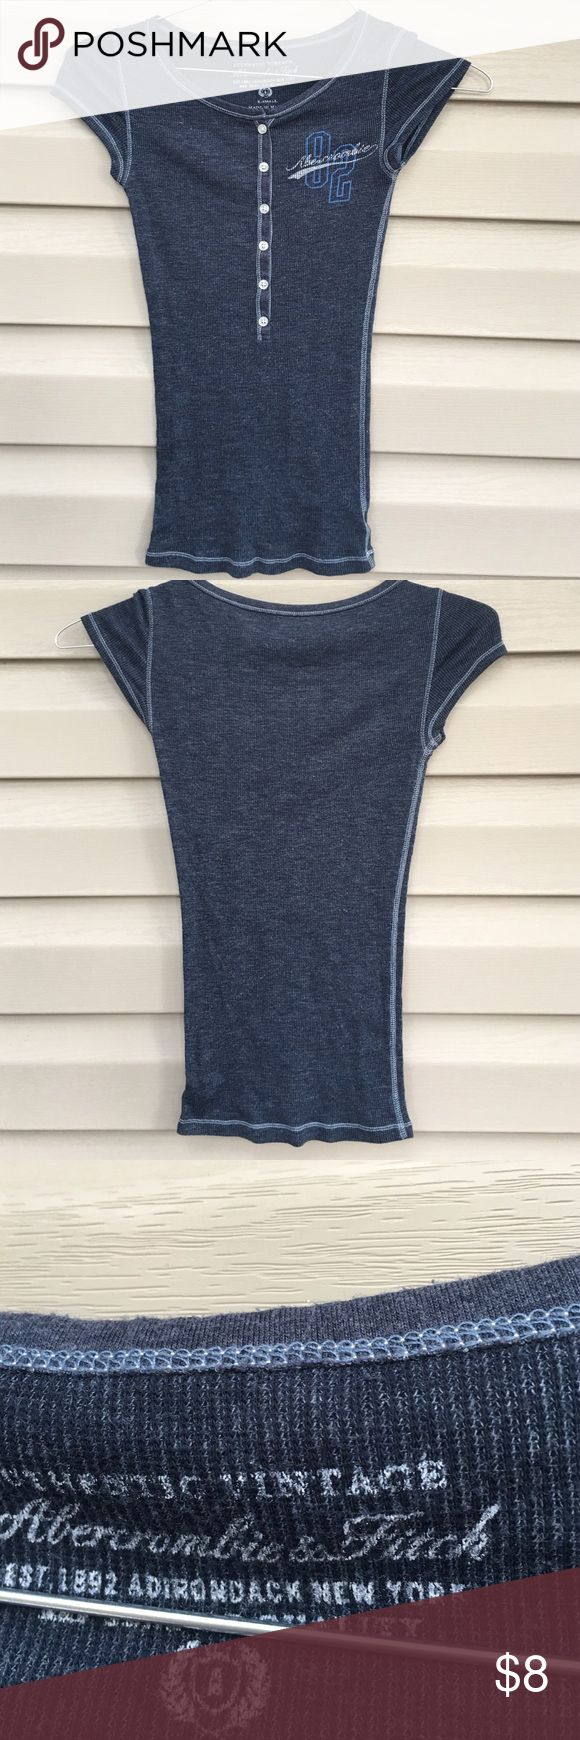 Abercrombie girls shirt Nice ribbed denim colored shirt with 6 buttons.64% cotton 36% polyester. No stains,snags or holes. Abercrombie & Fitch Tops Tees - Short Sleeve